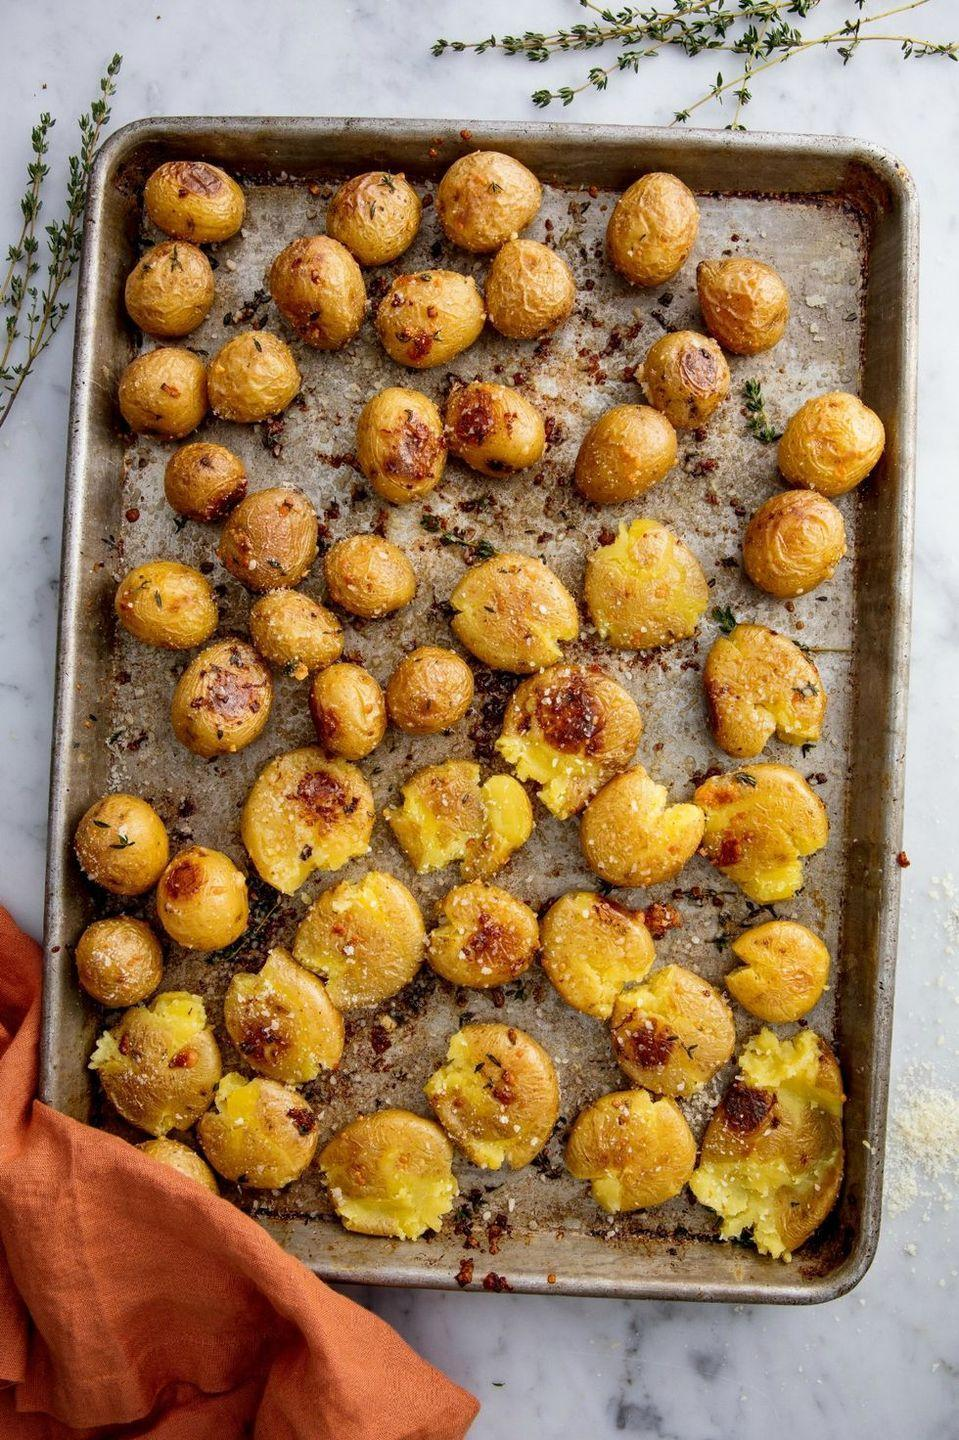 """<p>This recipe is all about the technique, but the flavour profile is infinitely adaptable. Try bacon and cheddar or BRIE.</p><p>Get the <a href=""""https://www.delish.com/uk/cooking/recipes/a28785932/garlic-smashed-potatoes-recipe/"""" rel=""""nofollow noopener"""" target=""""_blank"""" data-ylk=""""slk:Garlic Smashed Potatoes"""" class=""""link rapid-noclick-resp"""">Garlic Smashed Potatoes</a> recipe.</p>"""